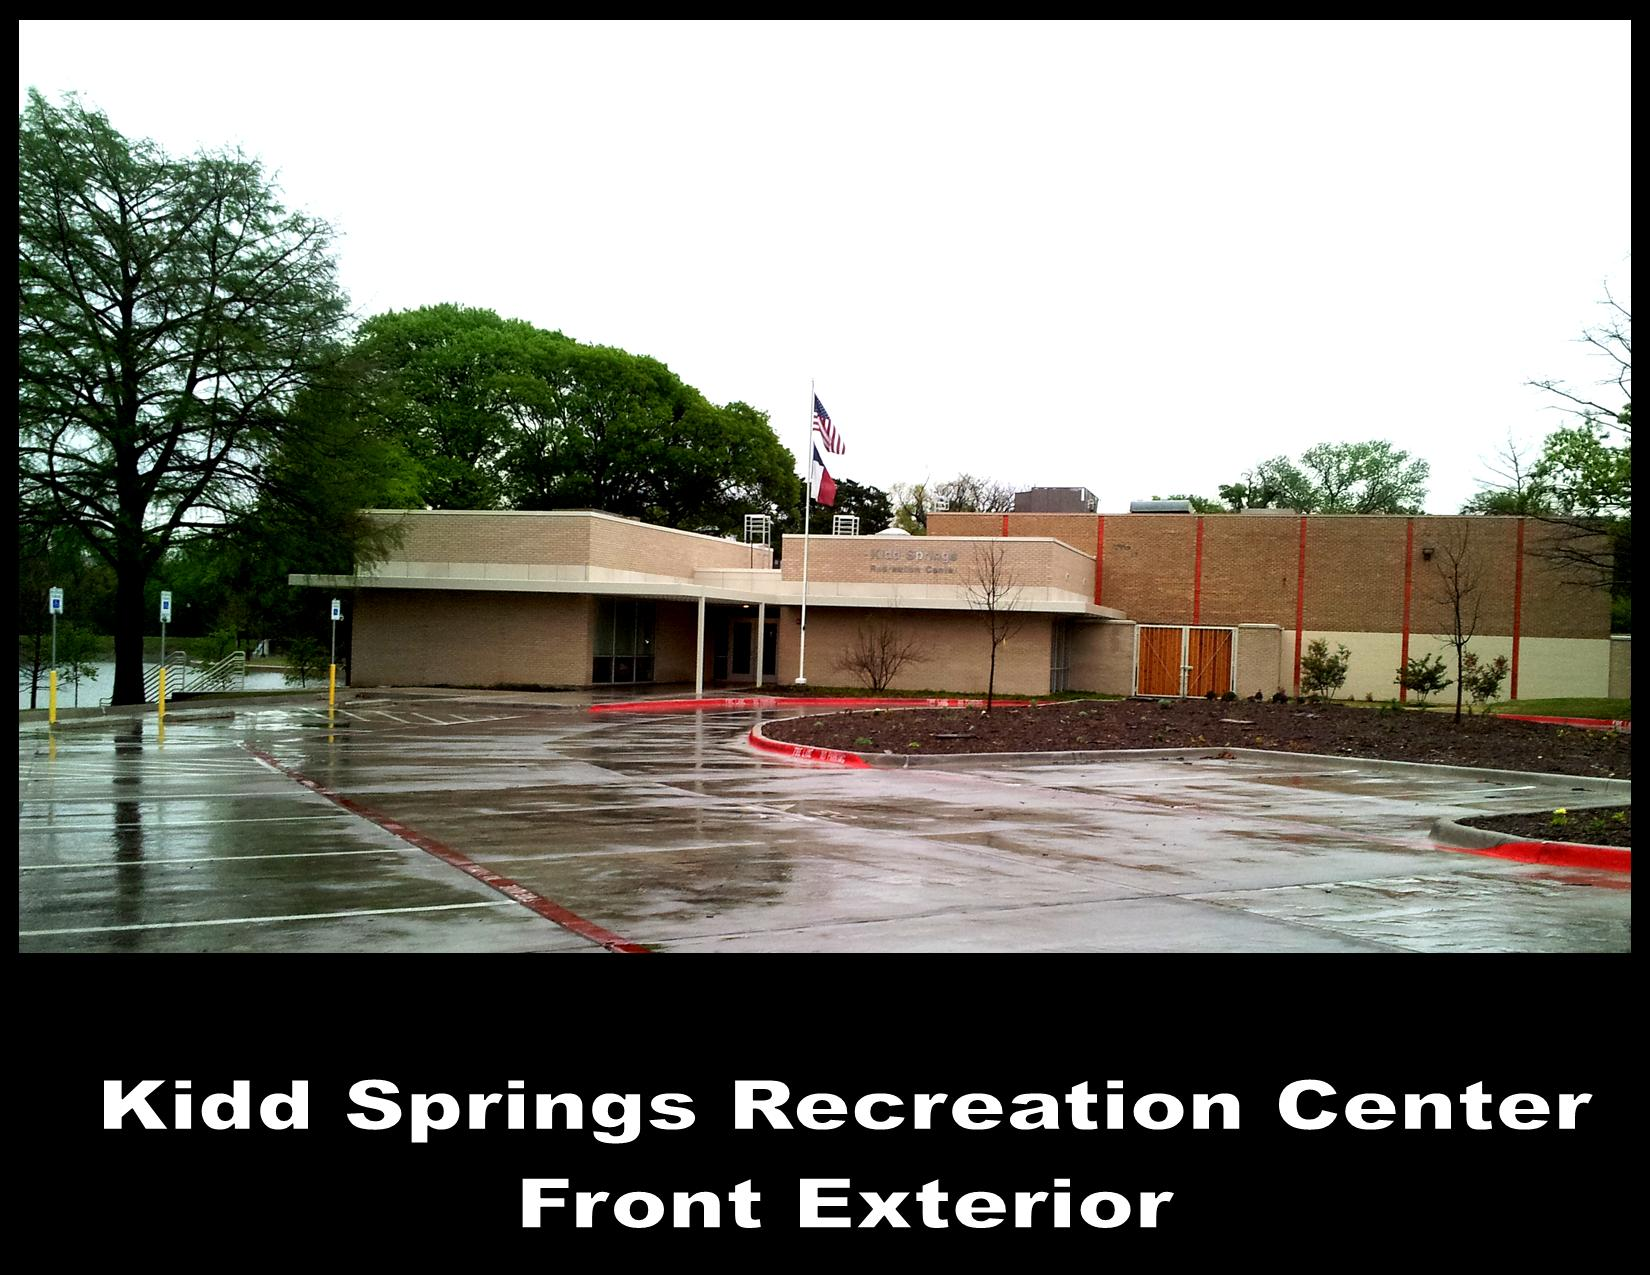 Kidd Springs Front Exterior